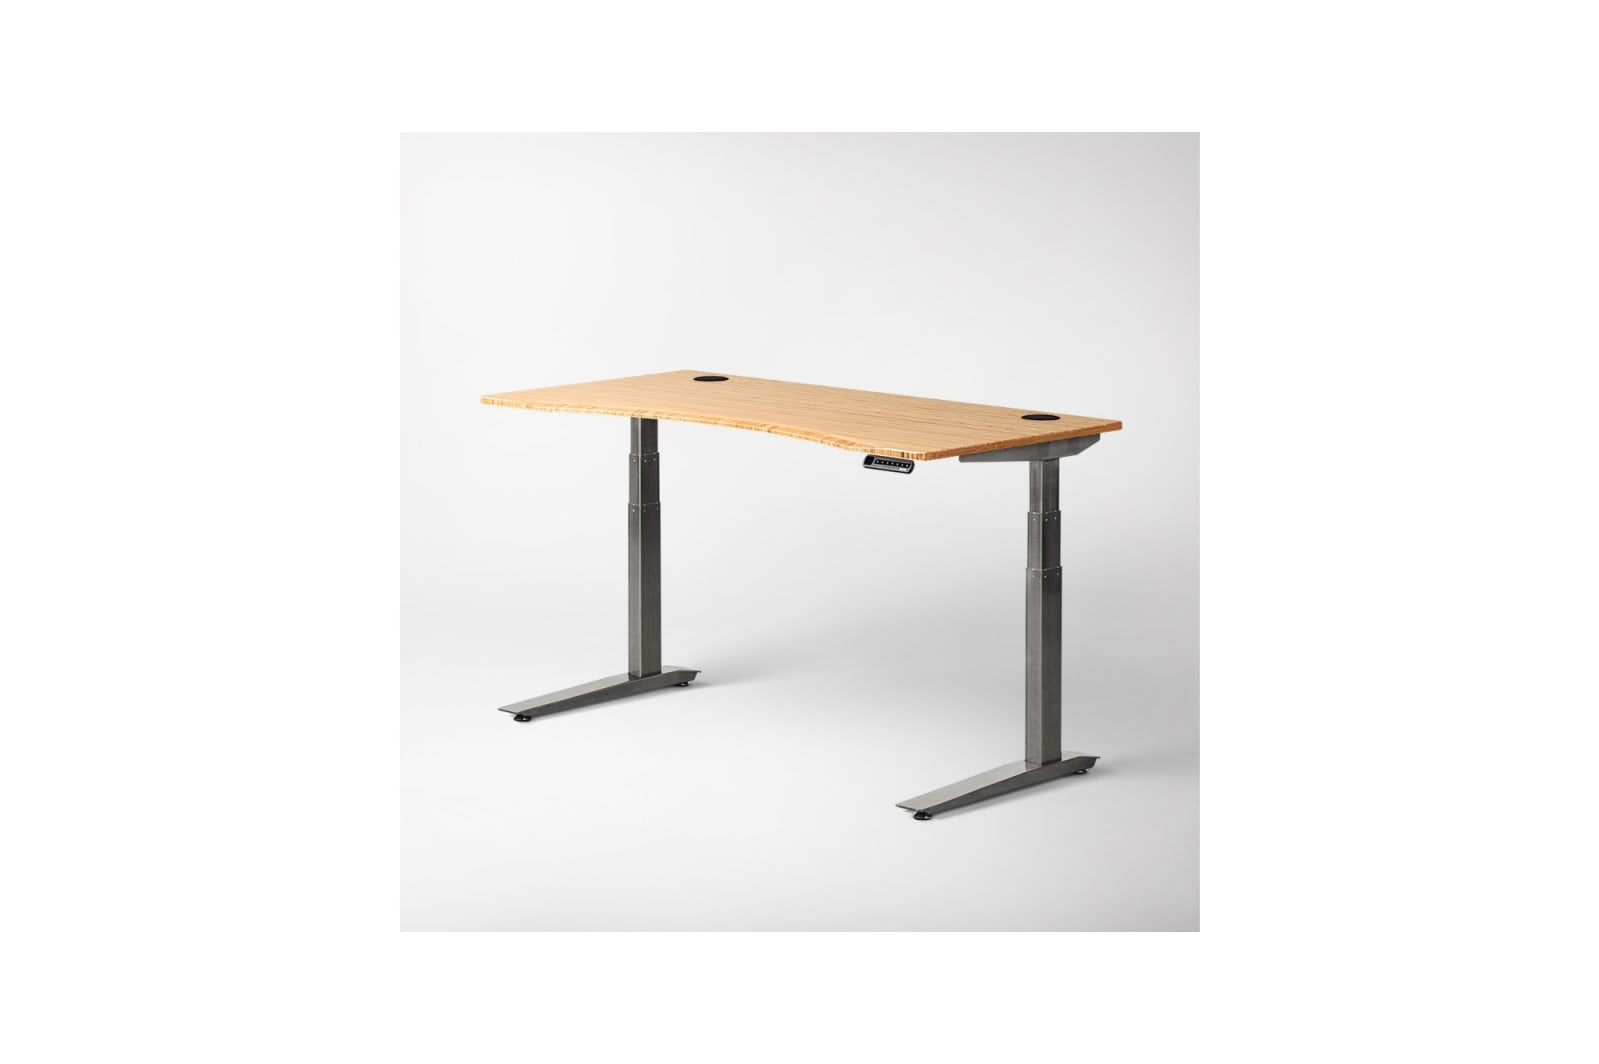 Fully Standing Desk and Home-Office Accessories